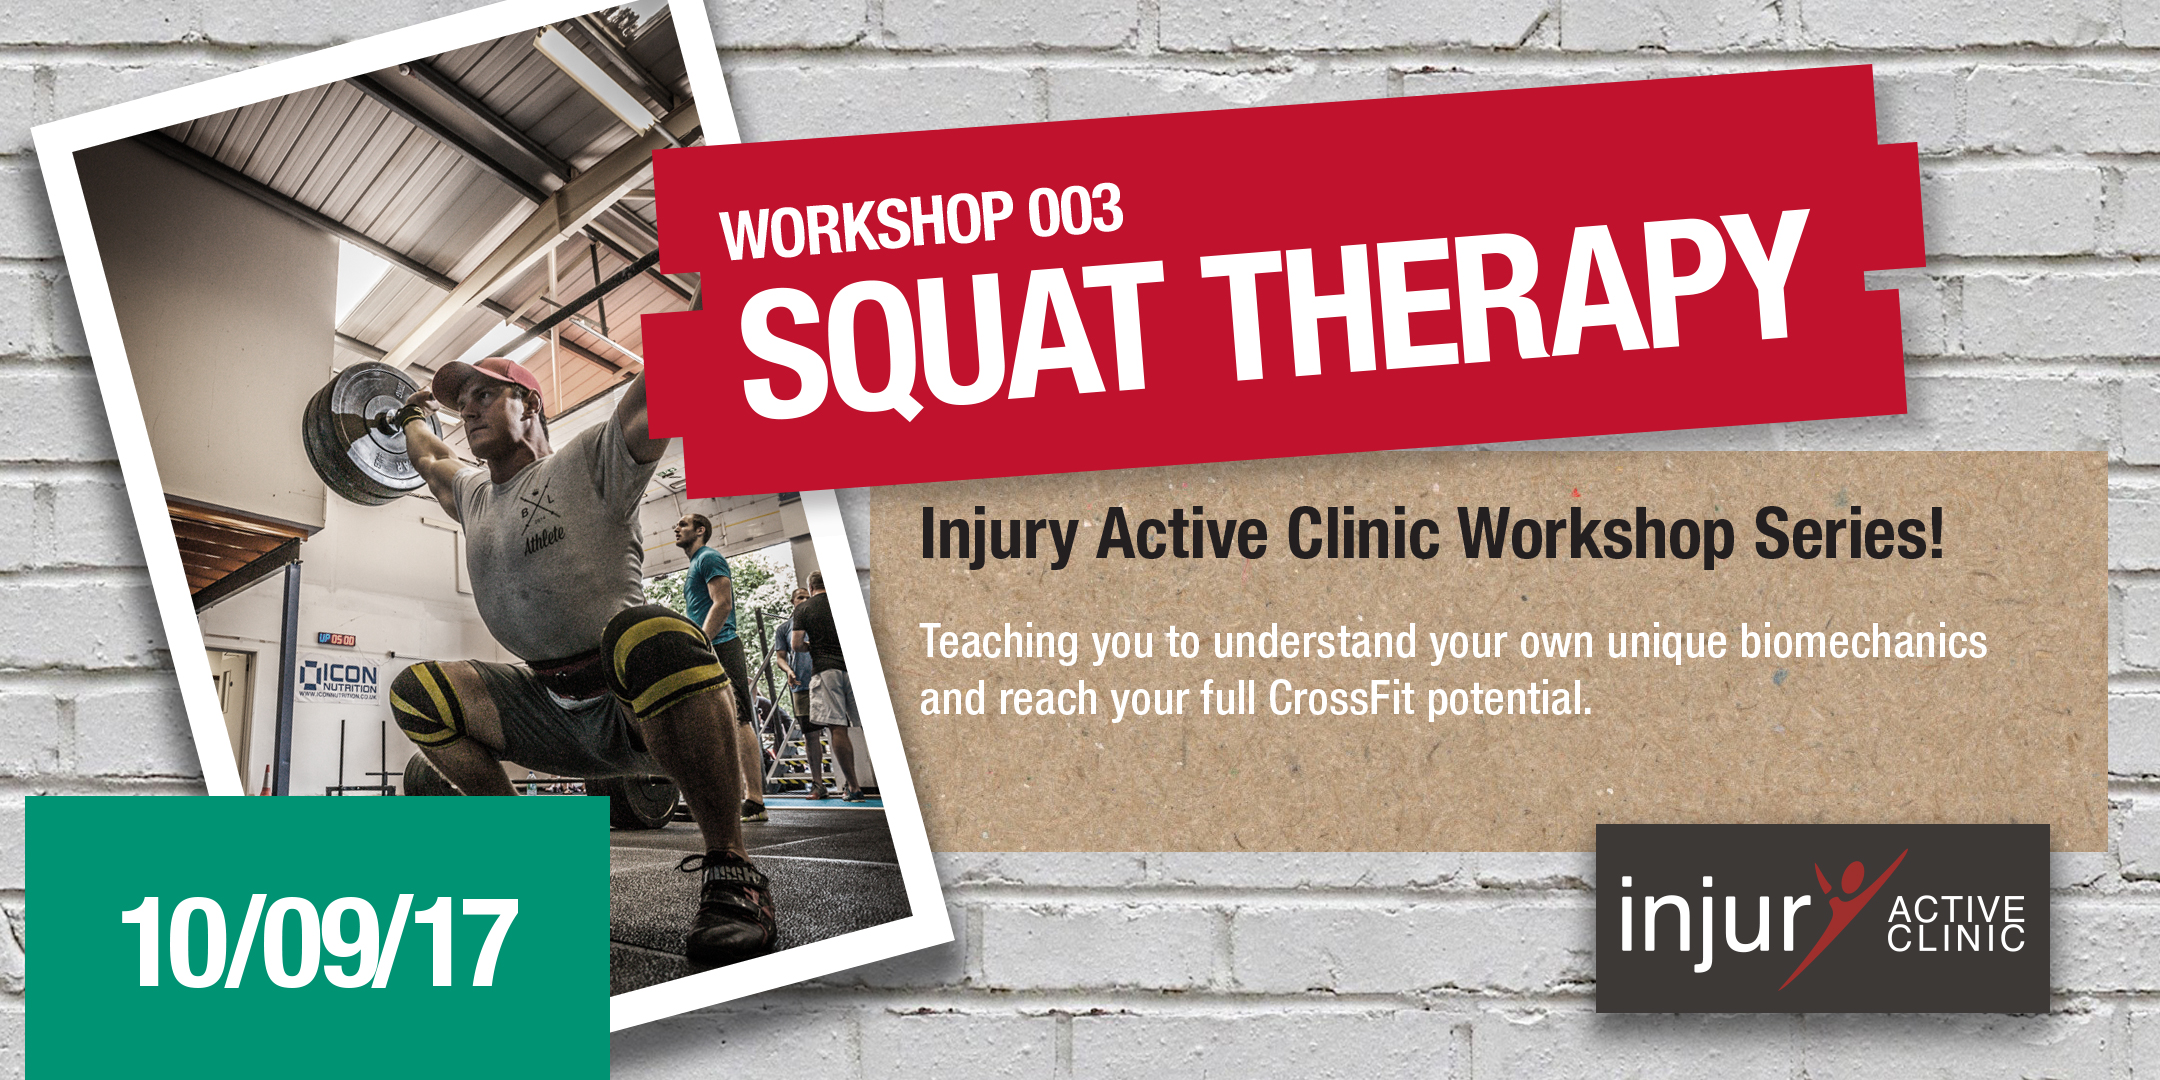 Injury Active Clinic Workshop 002 'Squat Therapy'